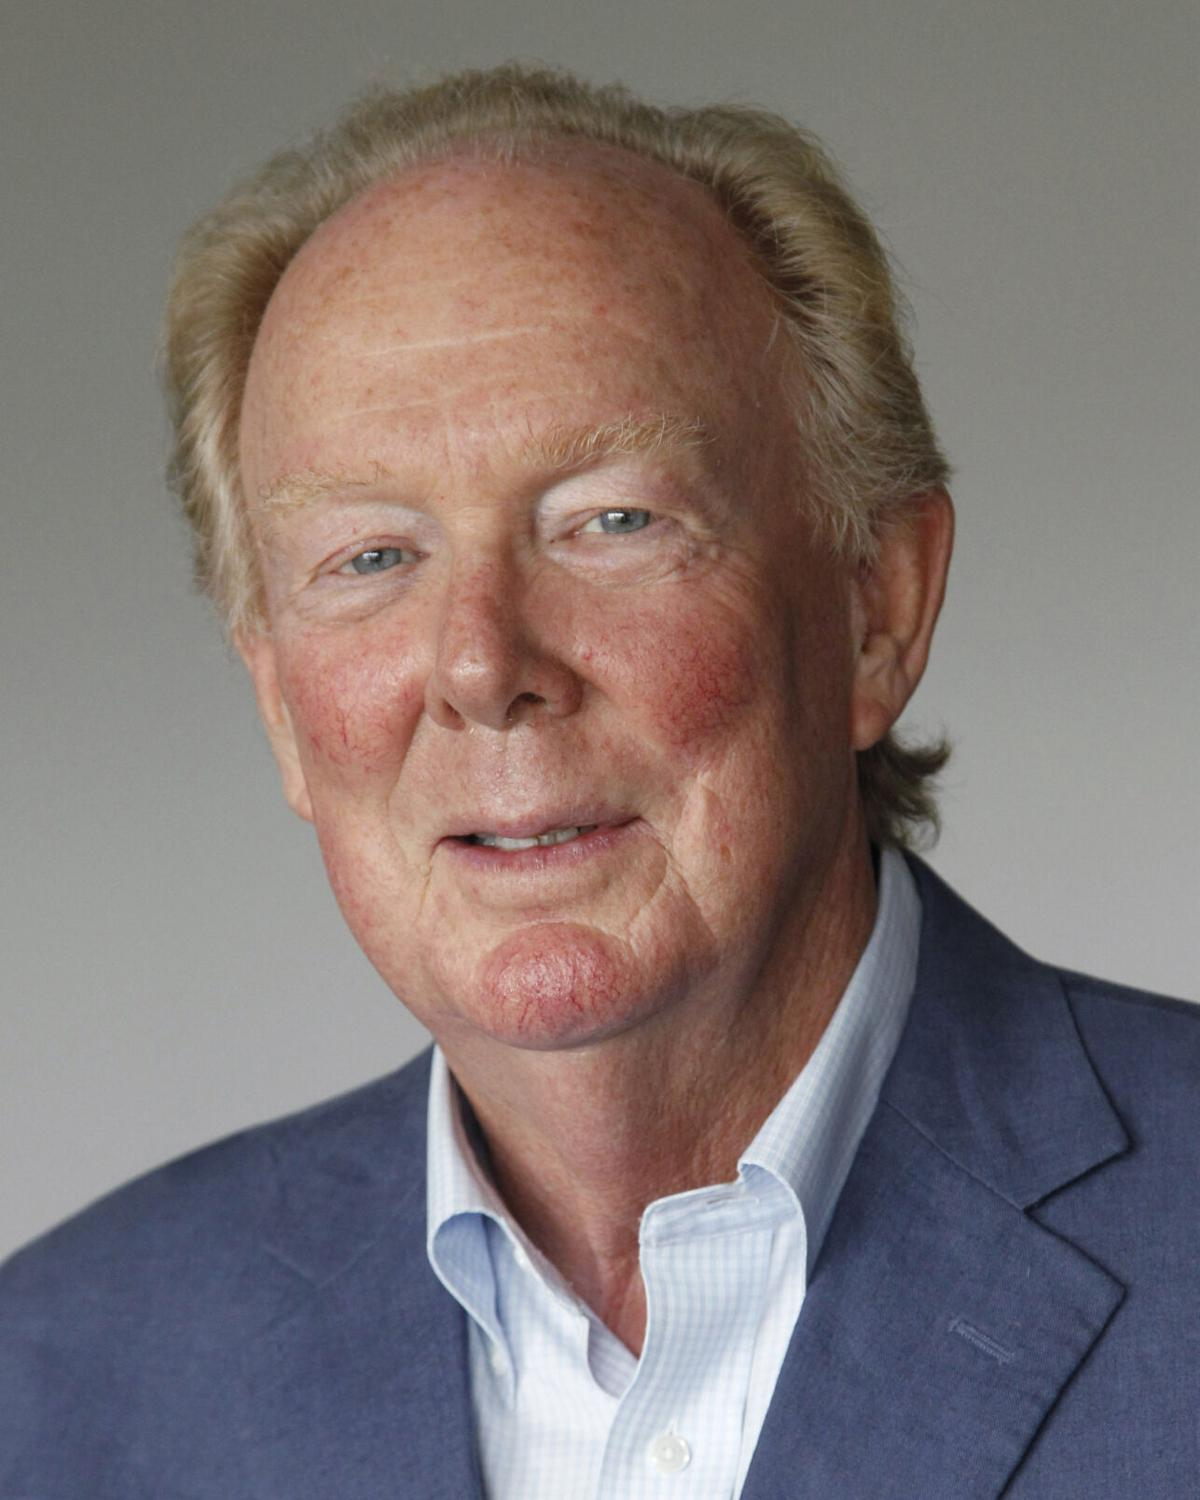 John Rosemond, nationally syndicated advice columnist, is photographed at the Herald-Leader on July 16, 2013 in Lexington, Ky..